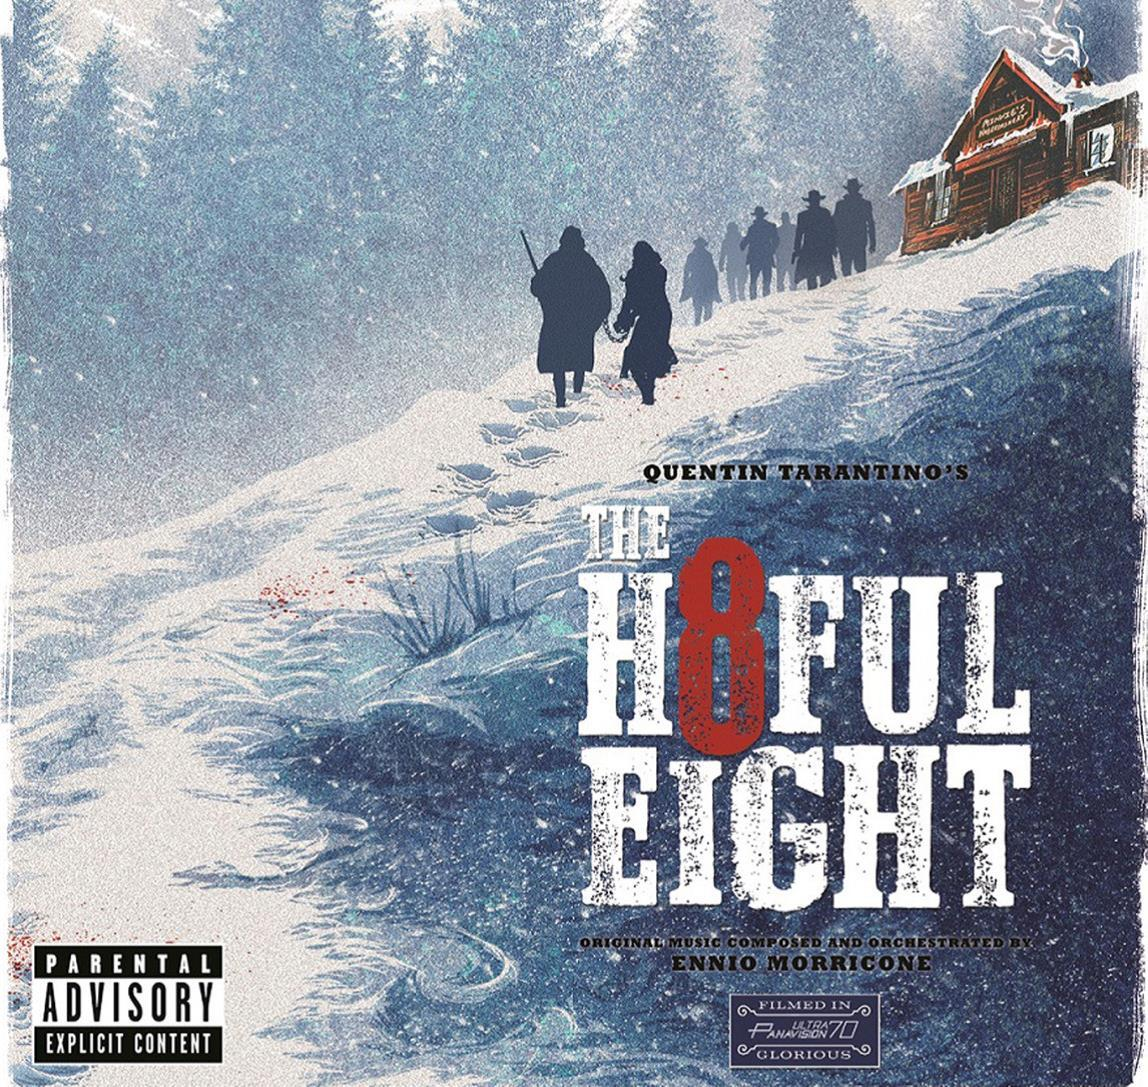 FILMZENE - THE HATEFUL EIGHT - CD -